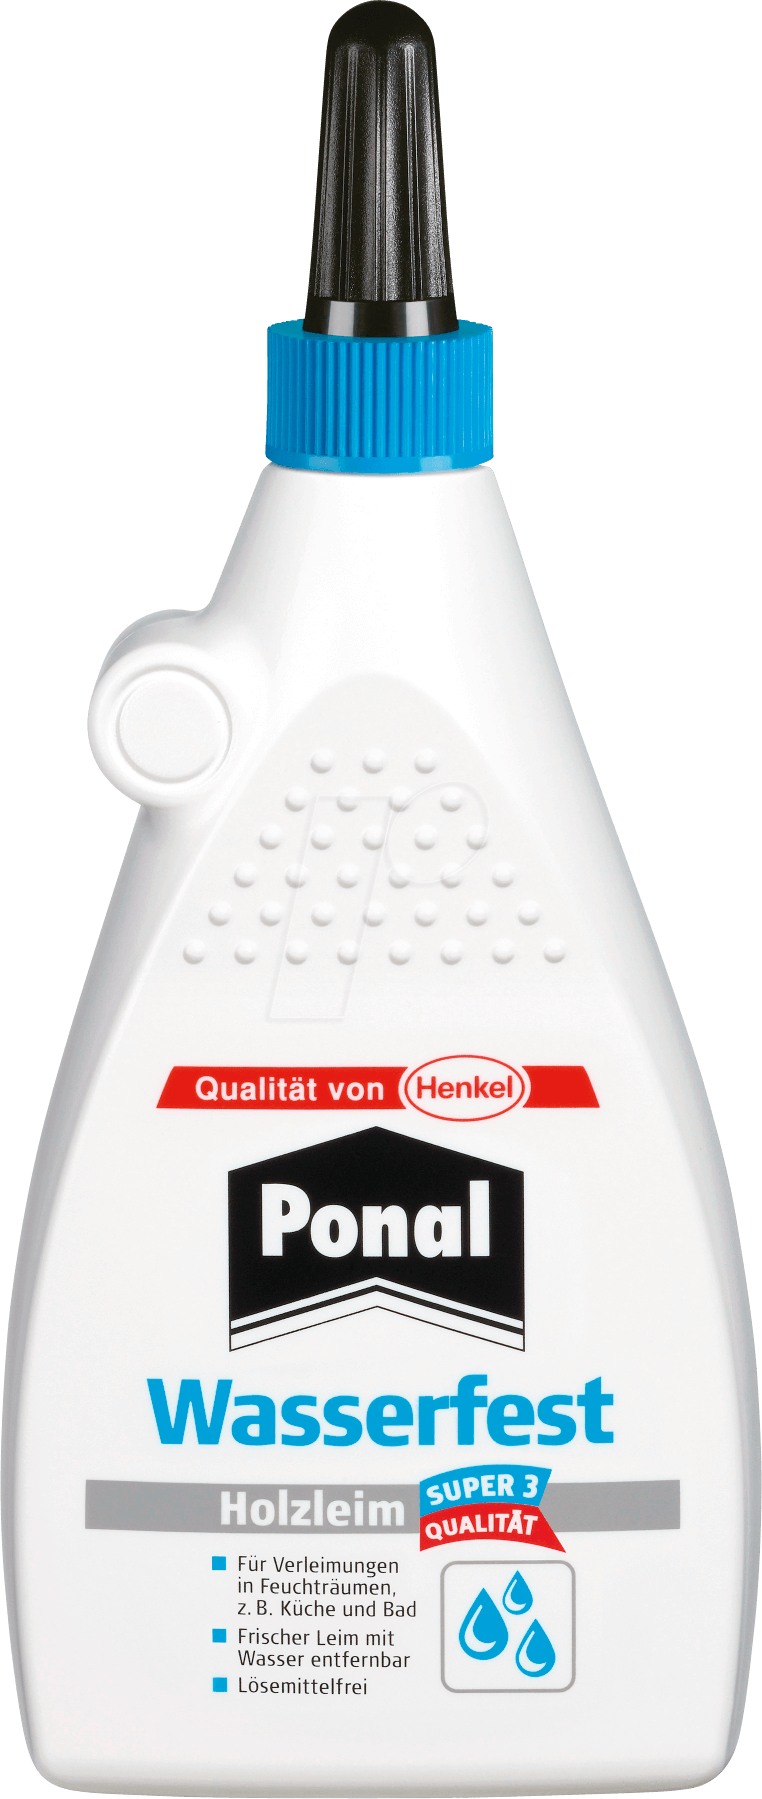 ponal pn18s 225: ponal super 3 pn 18s wood glue, 225 g at reichelt